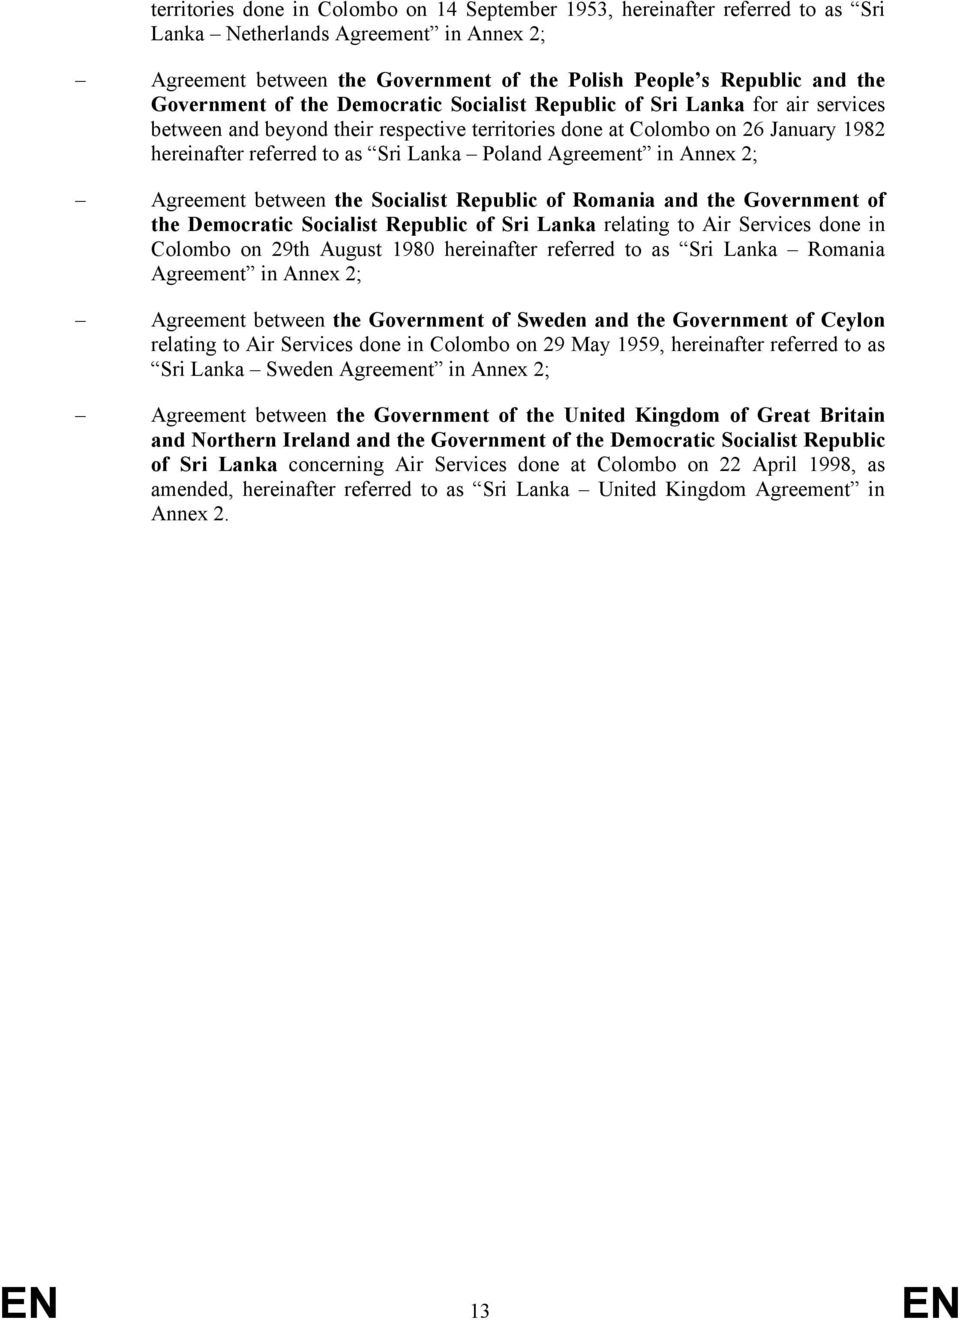 Poland Agreement in Annex 2; Agreement between the Socialist Republic of Romania and the Government of the Democratic Socialist Republic of Sri Lanka relating to Air Services done in Colombo on 29th